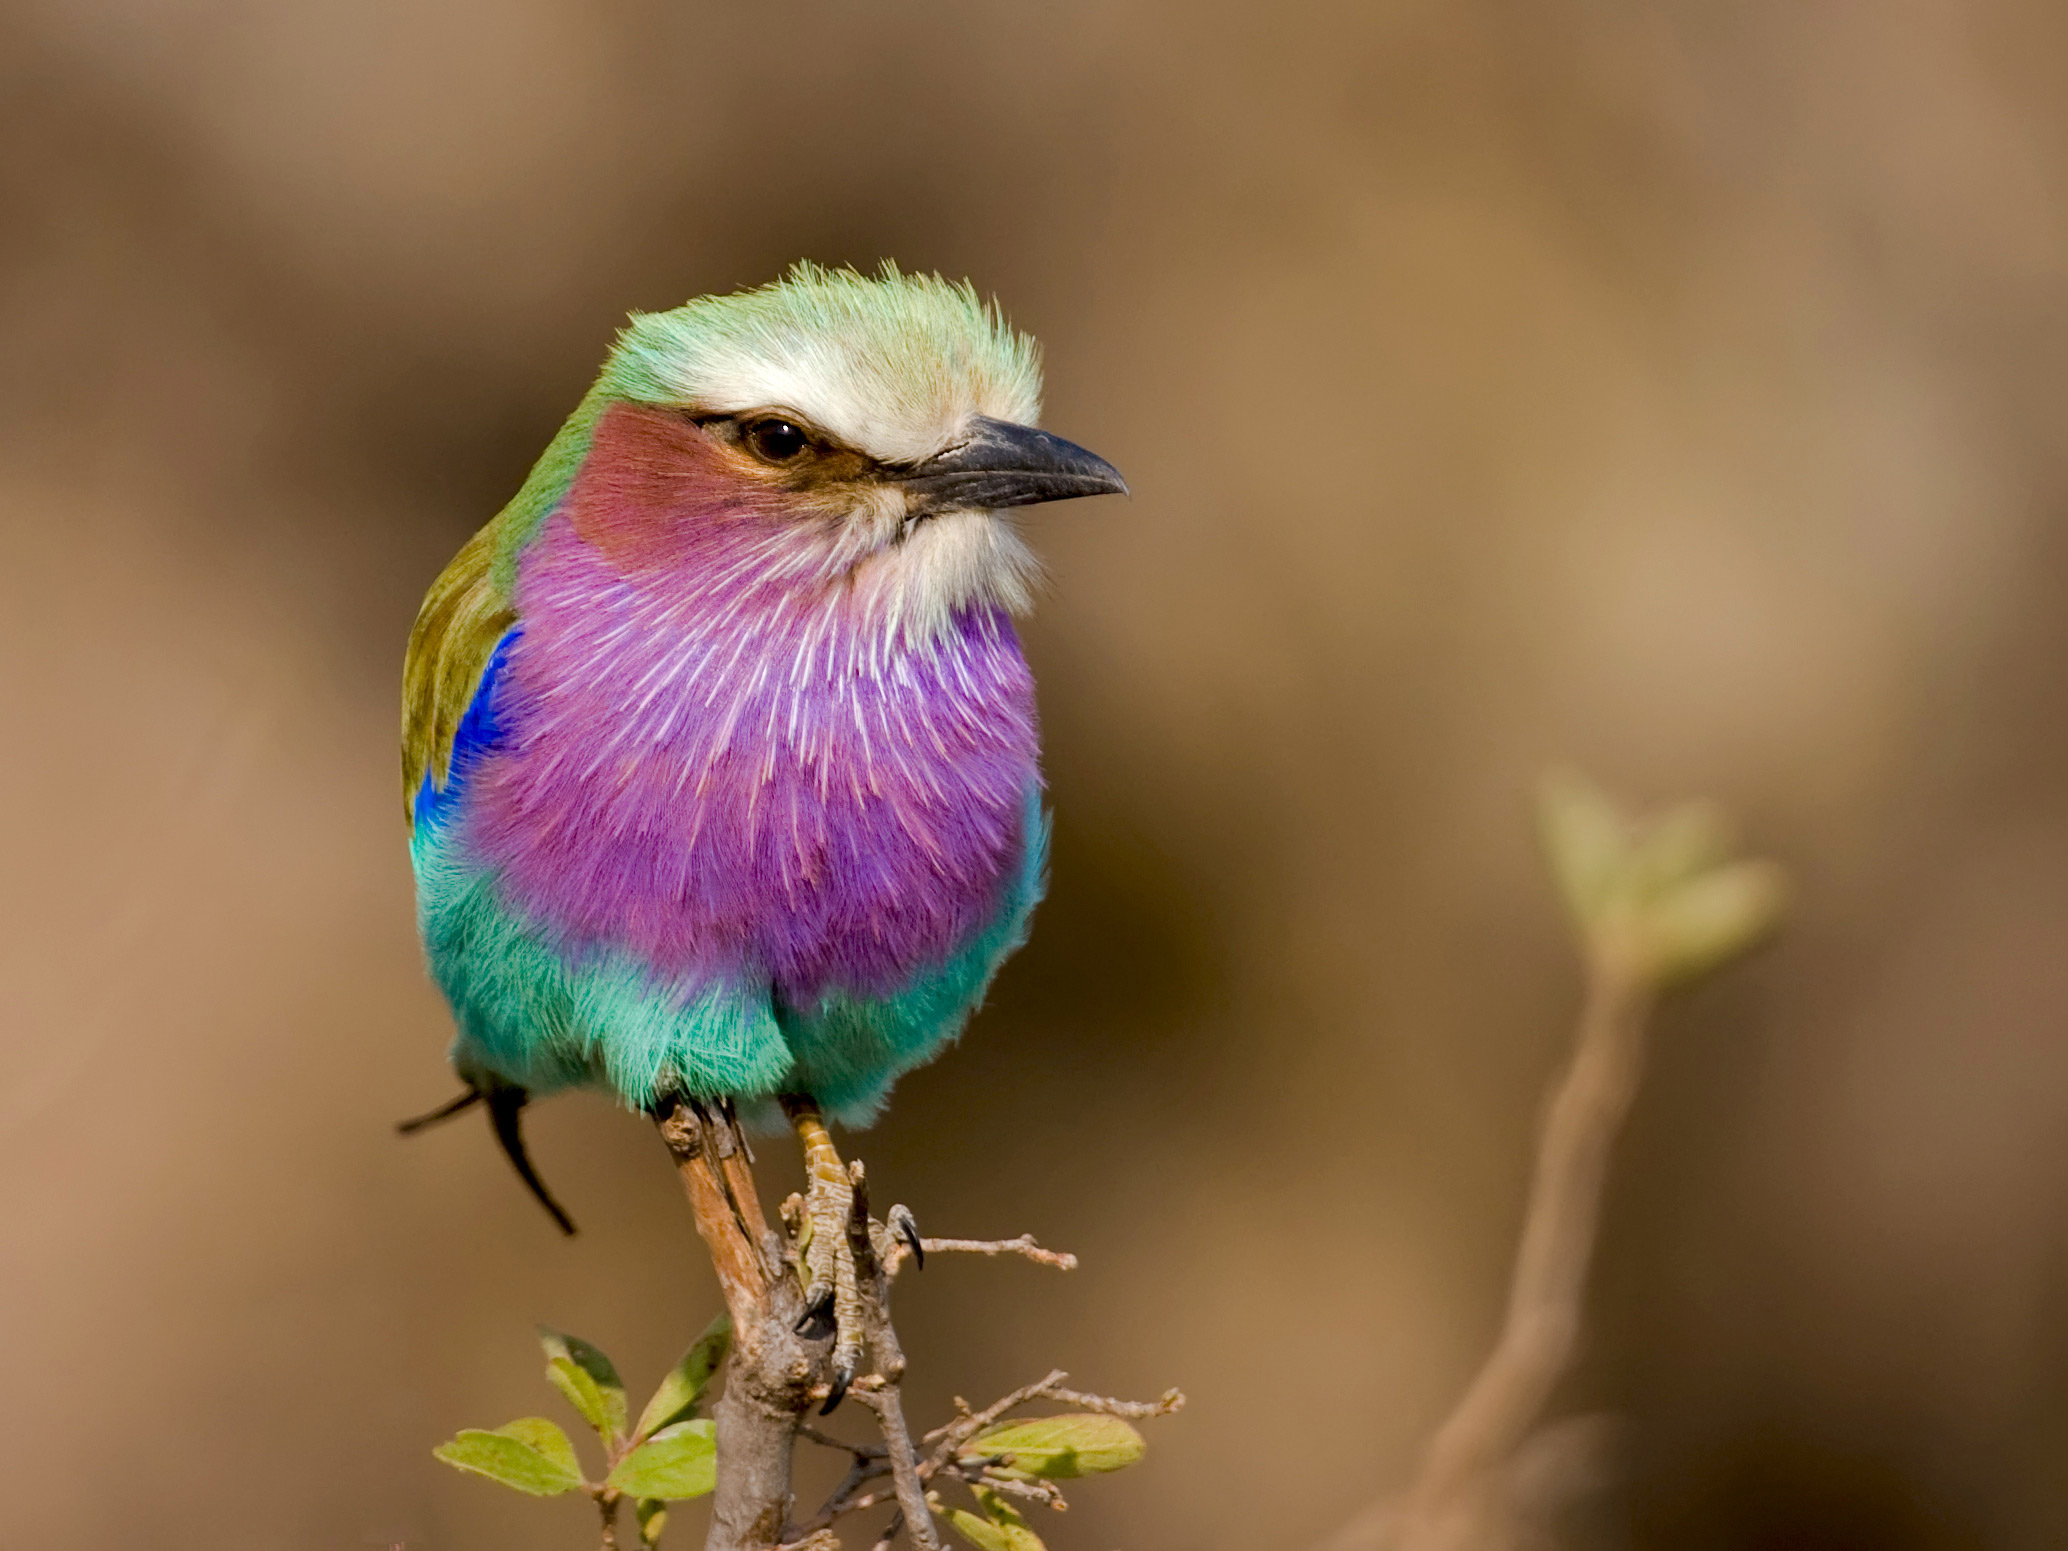 High Resolution Wallpaper | Lilac-breasted Roller 2068x1551 px